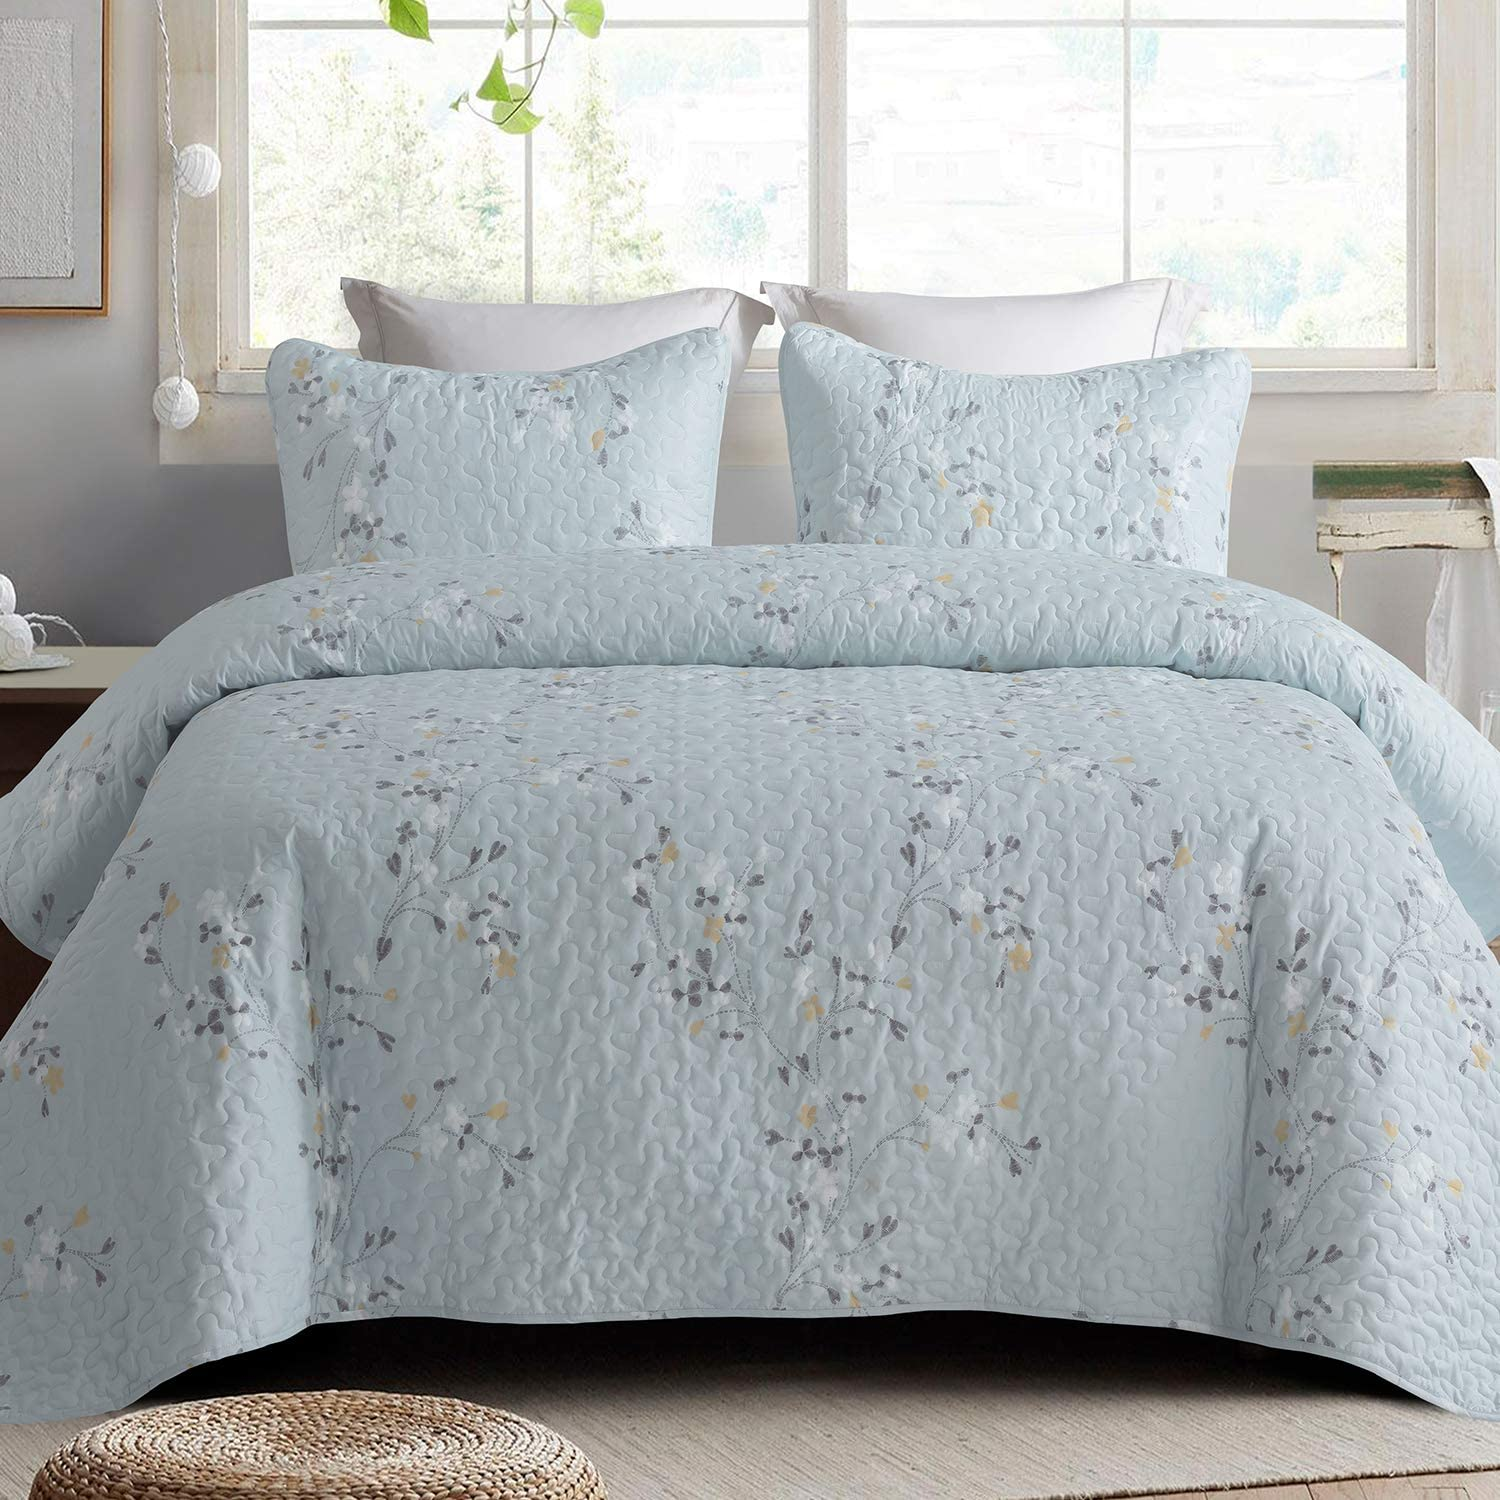 Exclusivo Mezcla Microfiber Twin Size Quilt Set for All Seasons, 2 Piece Flower Pattern Bedspread/Coverlet/Bedding Set with 1 Sham, Lightweight and Soft, (68